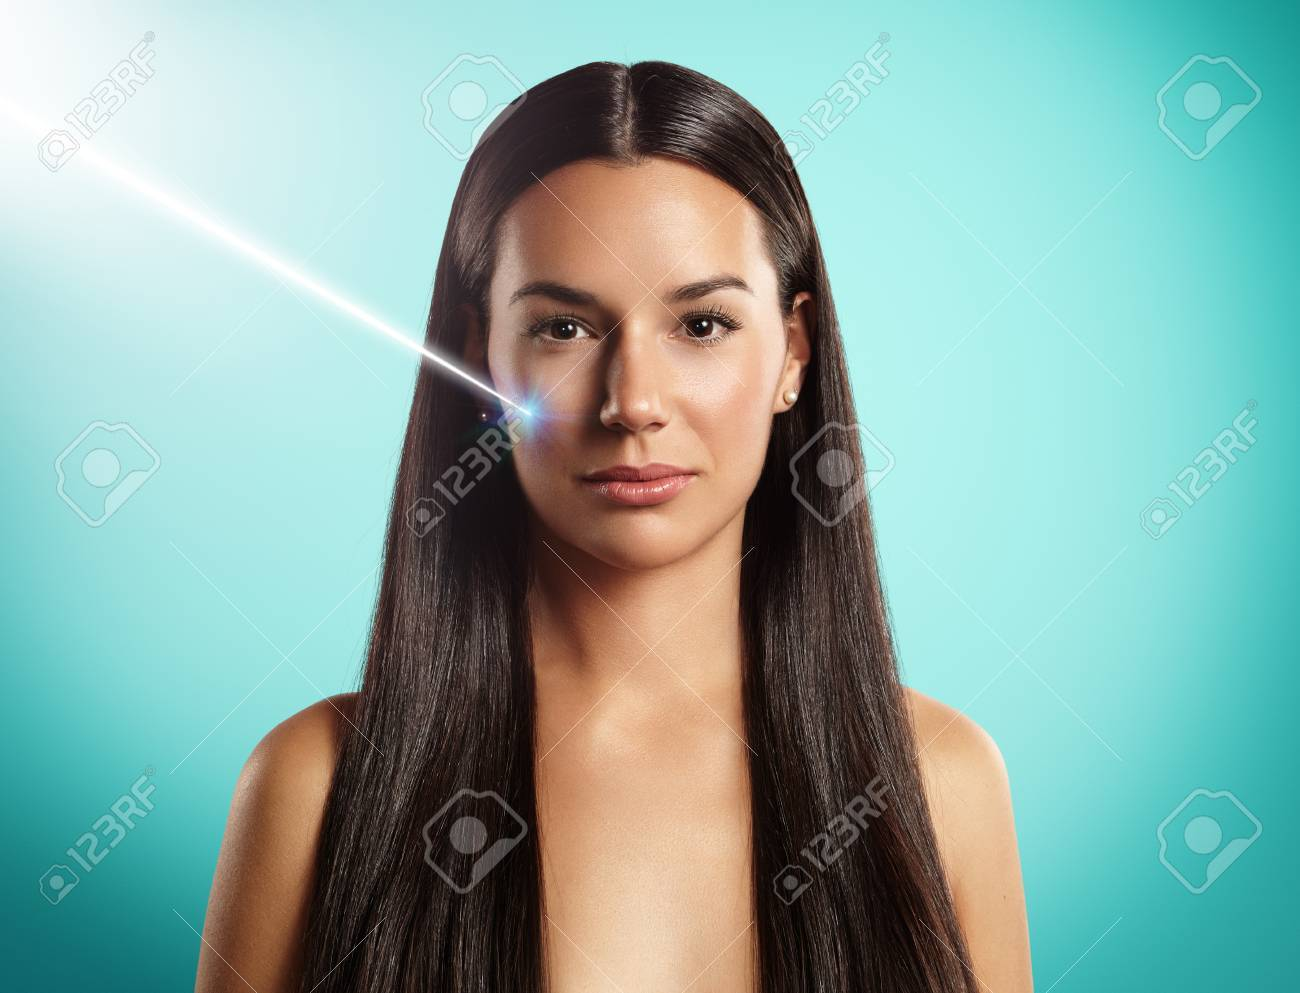 woman's laser cosmetology or surgery - 34674684